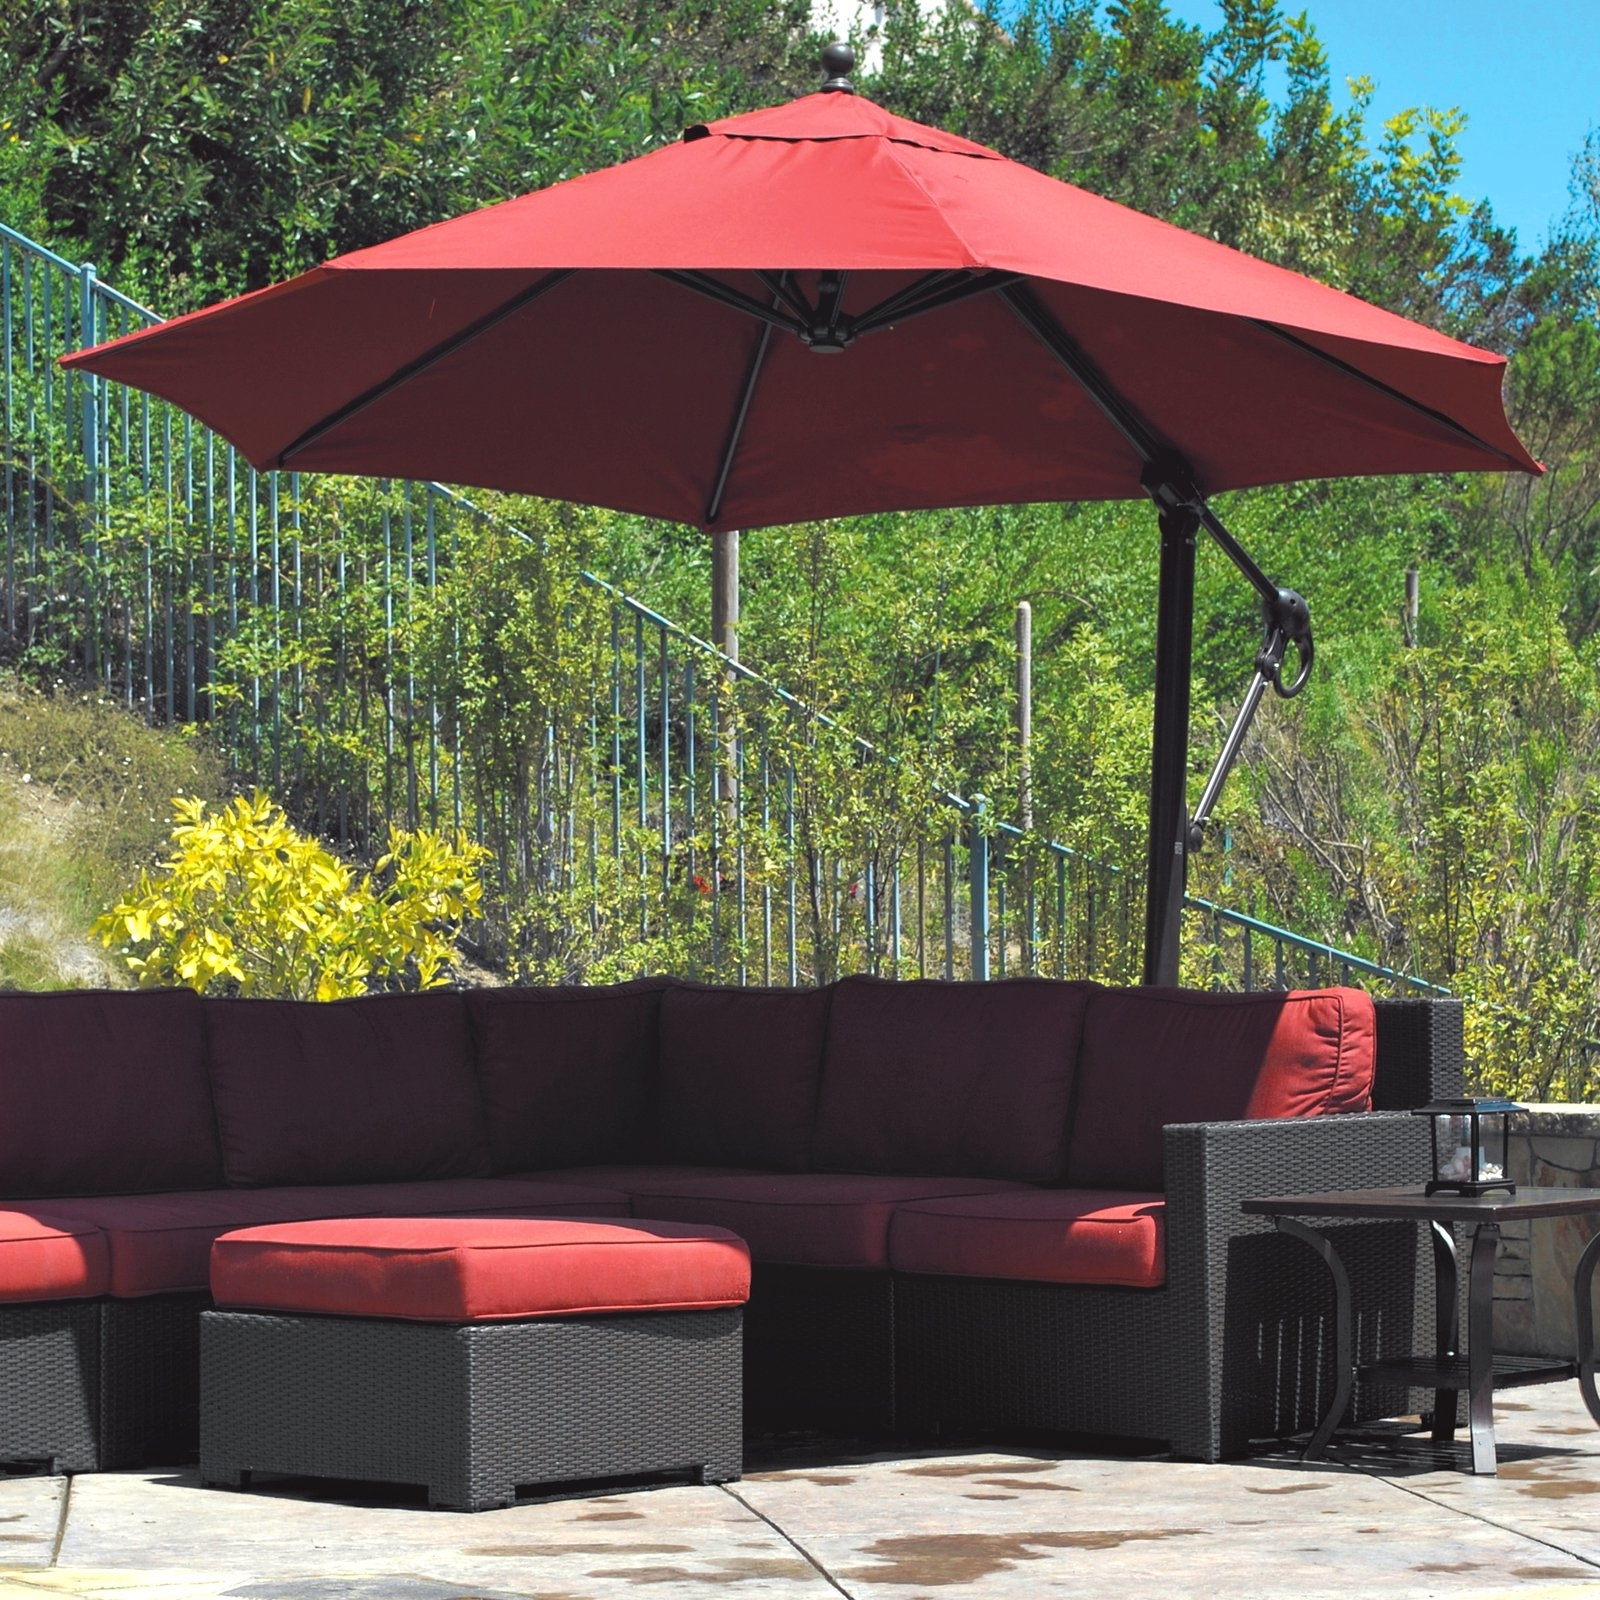 Best Small Patio Umbrella Ideas : Life On The Move – Nice Small Within Preferred Small Patio Tables With Umbrellas (View 3 of 20)